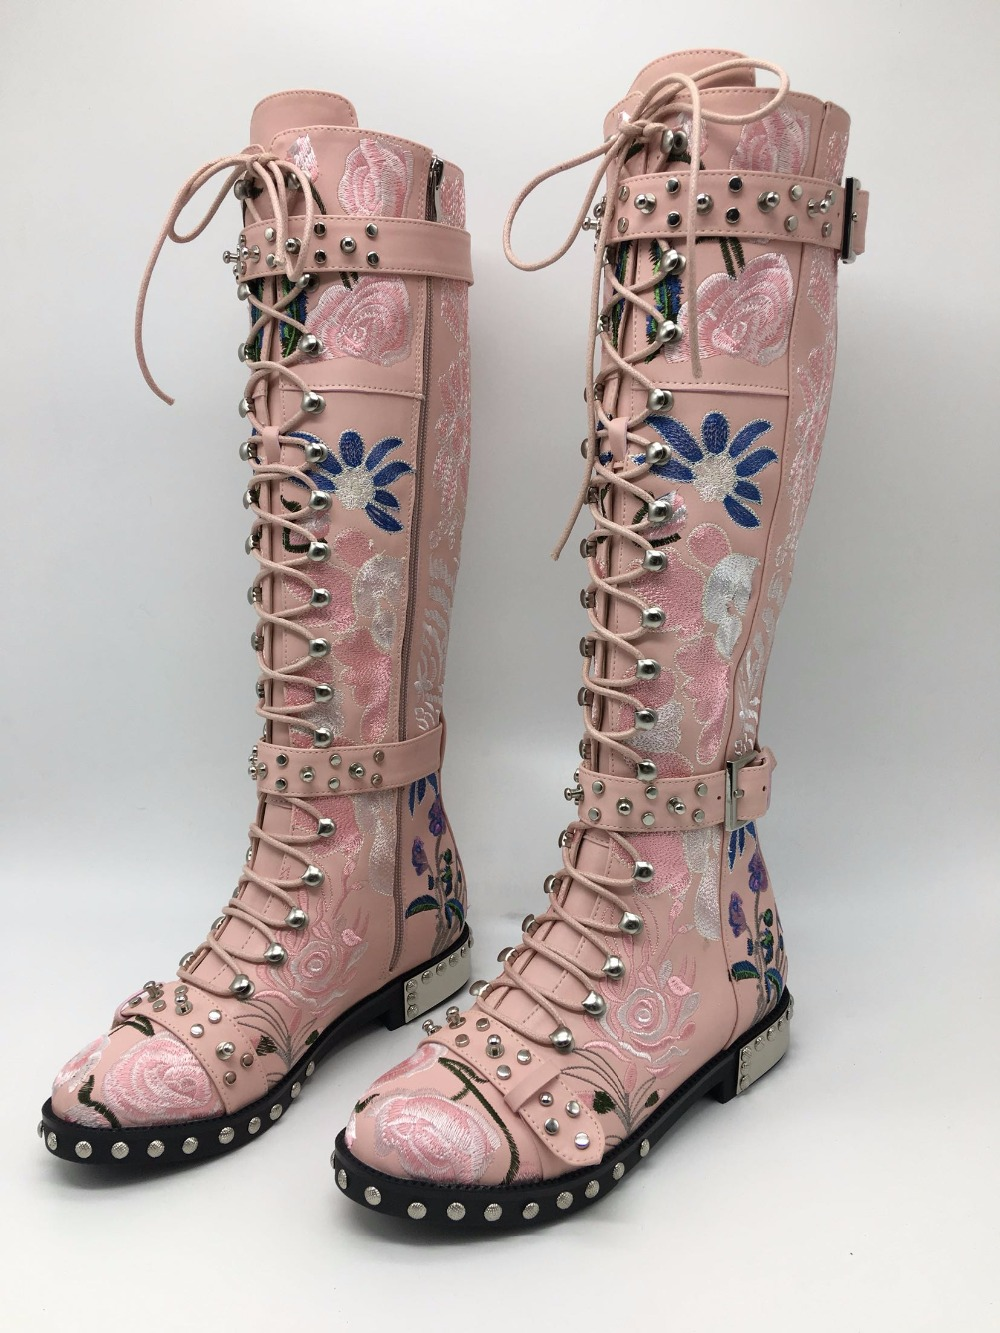 Sestito Woman Cool 3 Bands Side Zipper Round Toe Knight Boots With Rivets Female Embroidery Flower Print Casual Knee High Boots